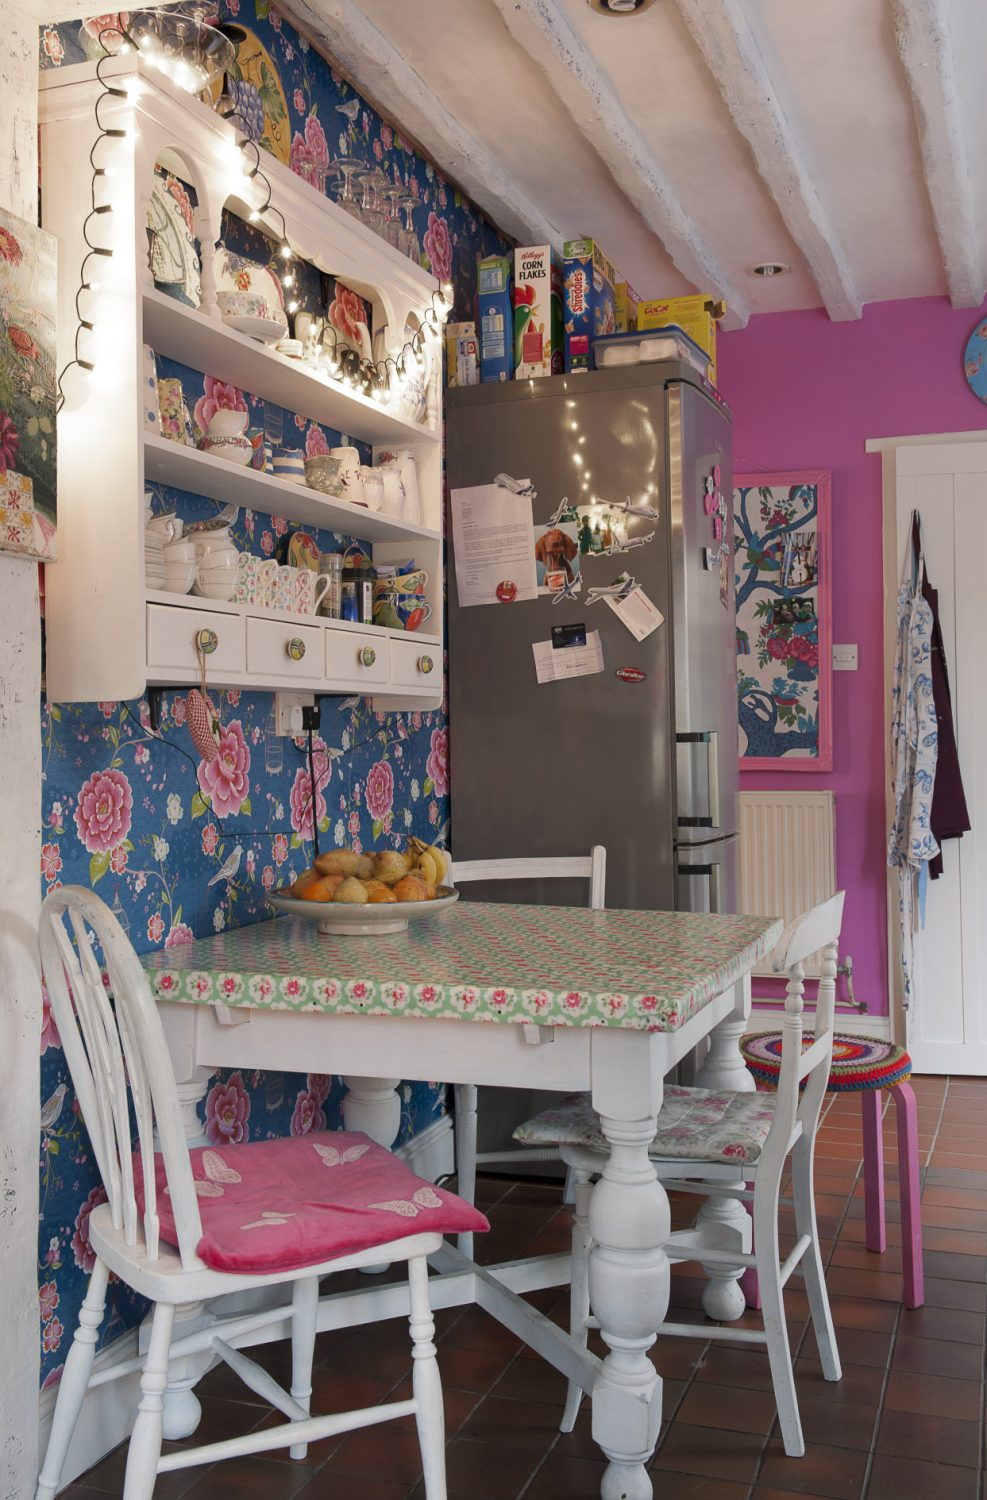 One wall of the vibrant pink kitchen is papered with 'Birds in Paradise' by Pip Studio